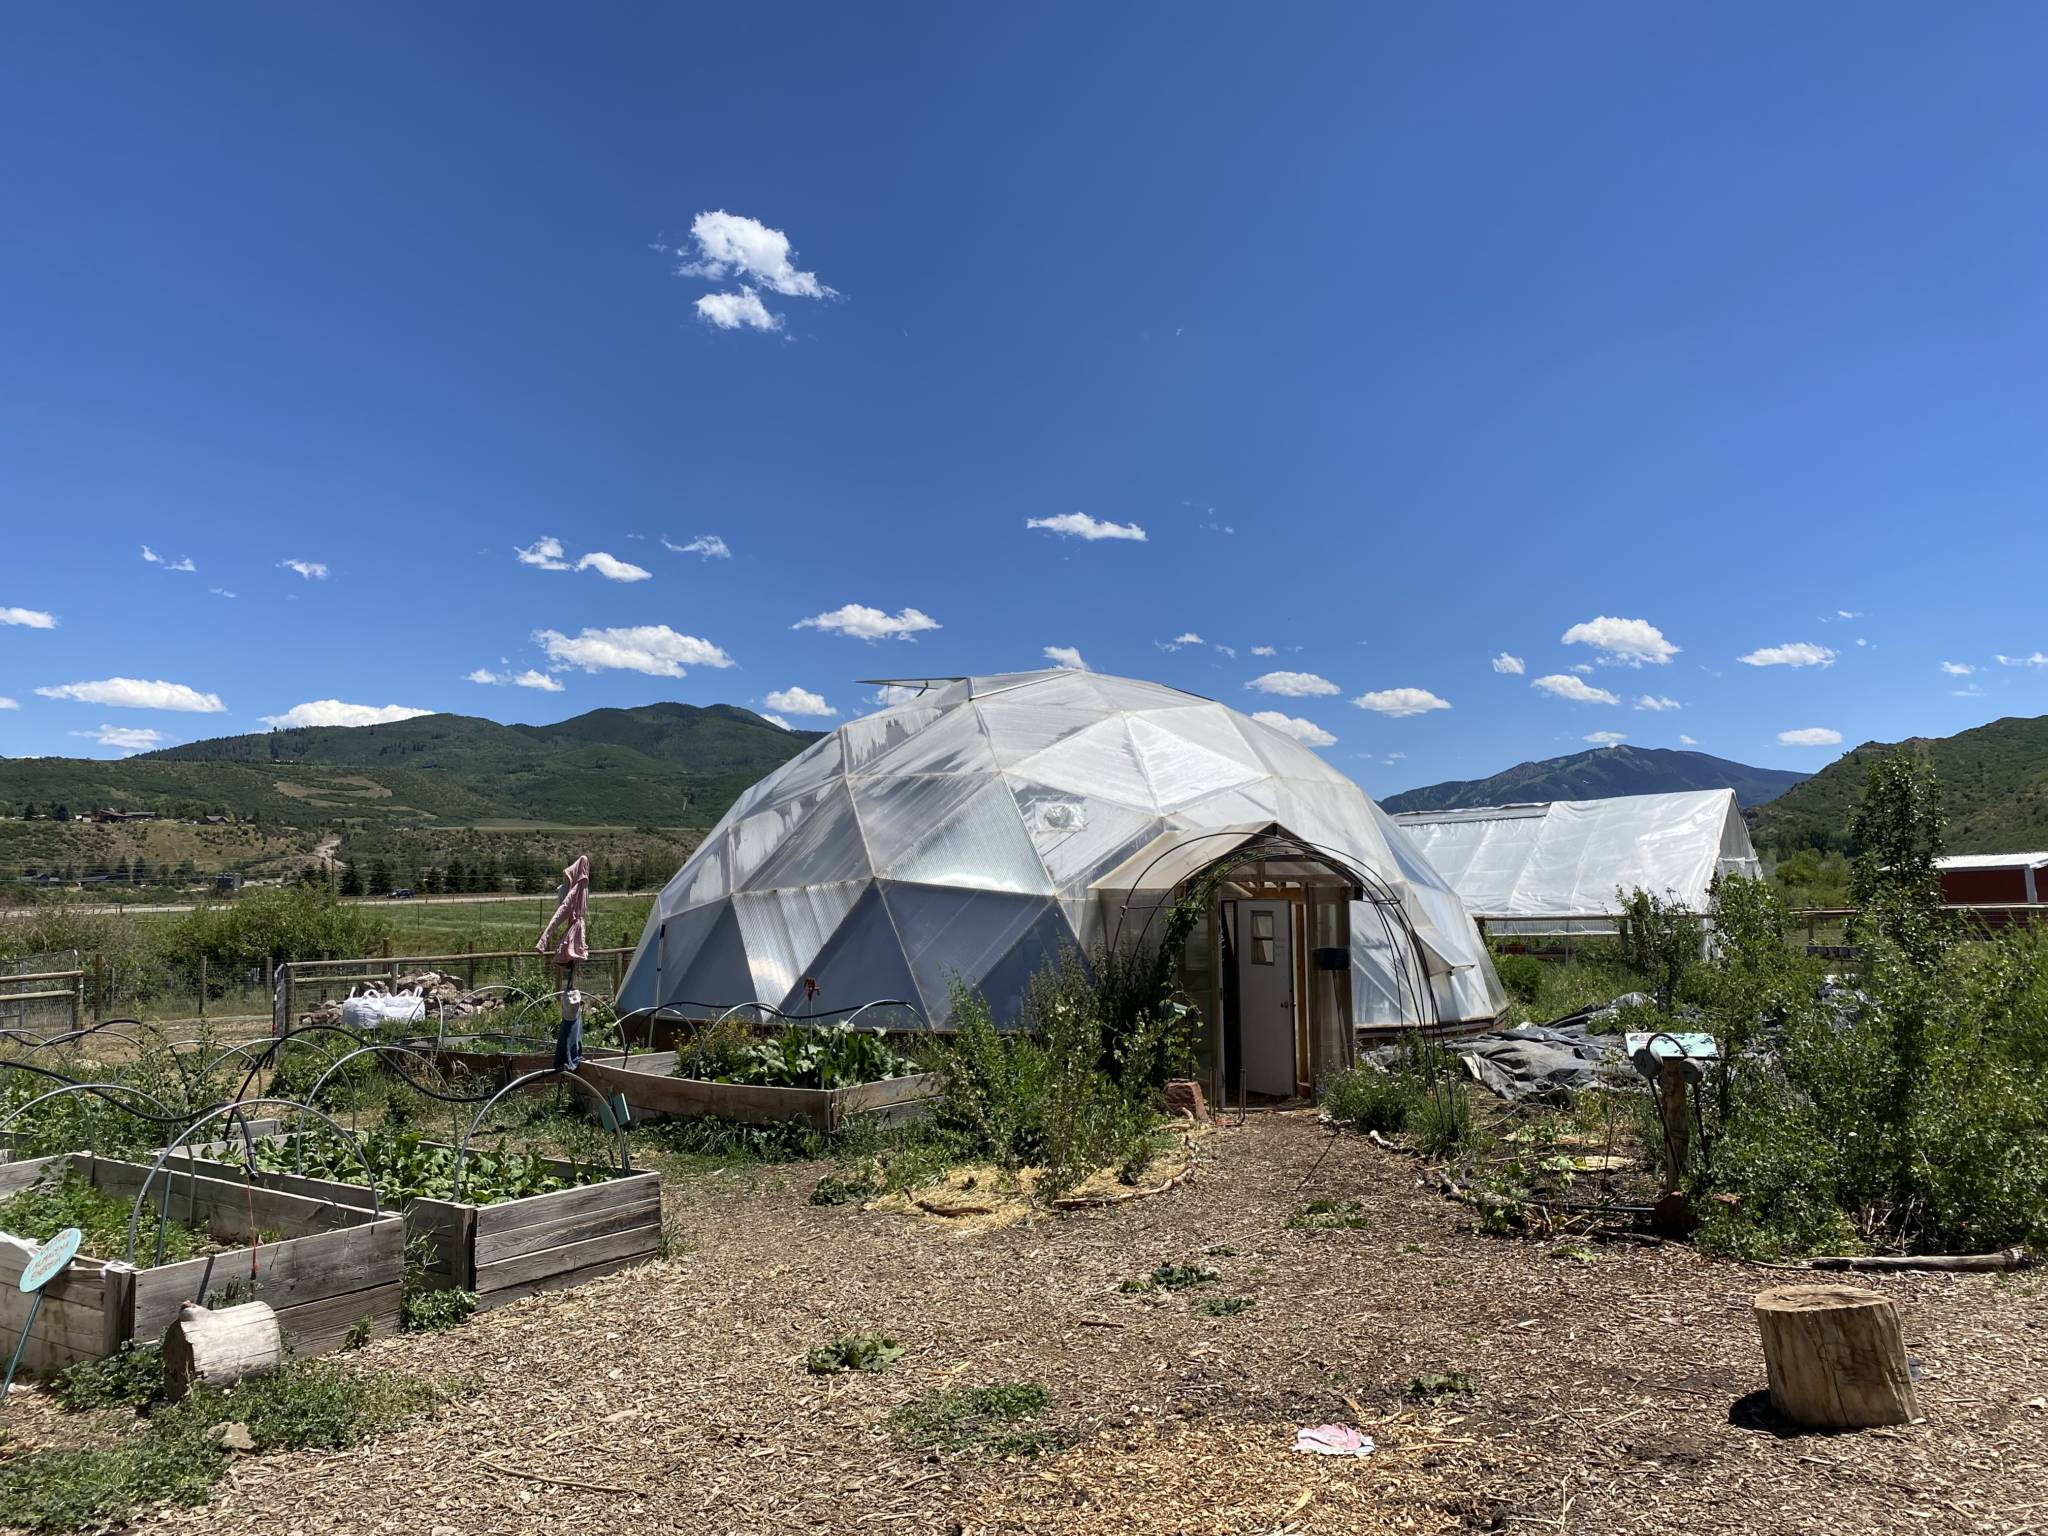 42' Growing Dome Geodesic Greenhouse at The Farm Collaborative in Aspen, CO